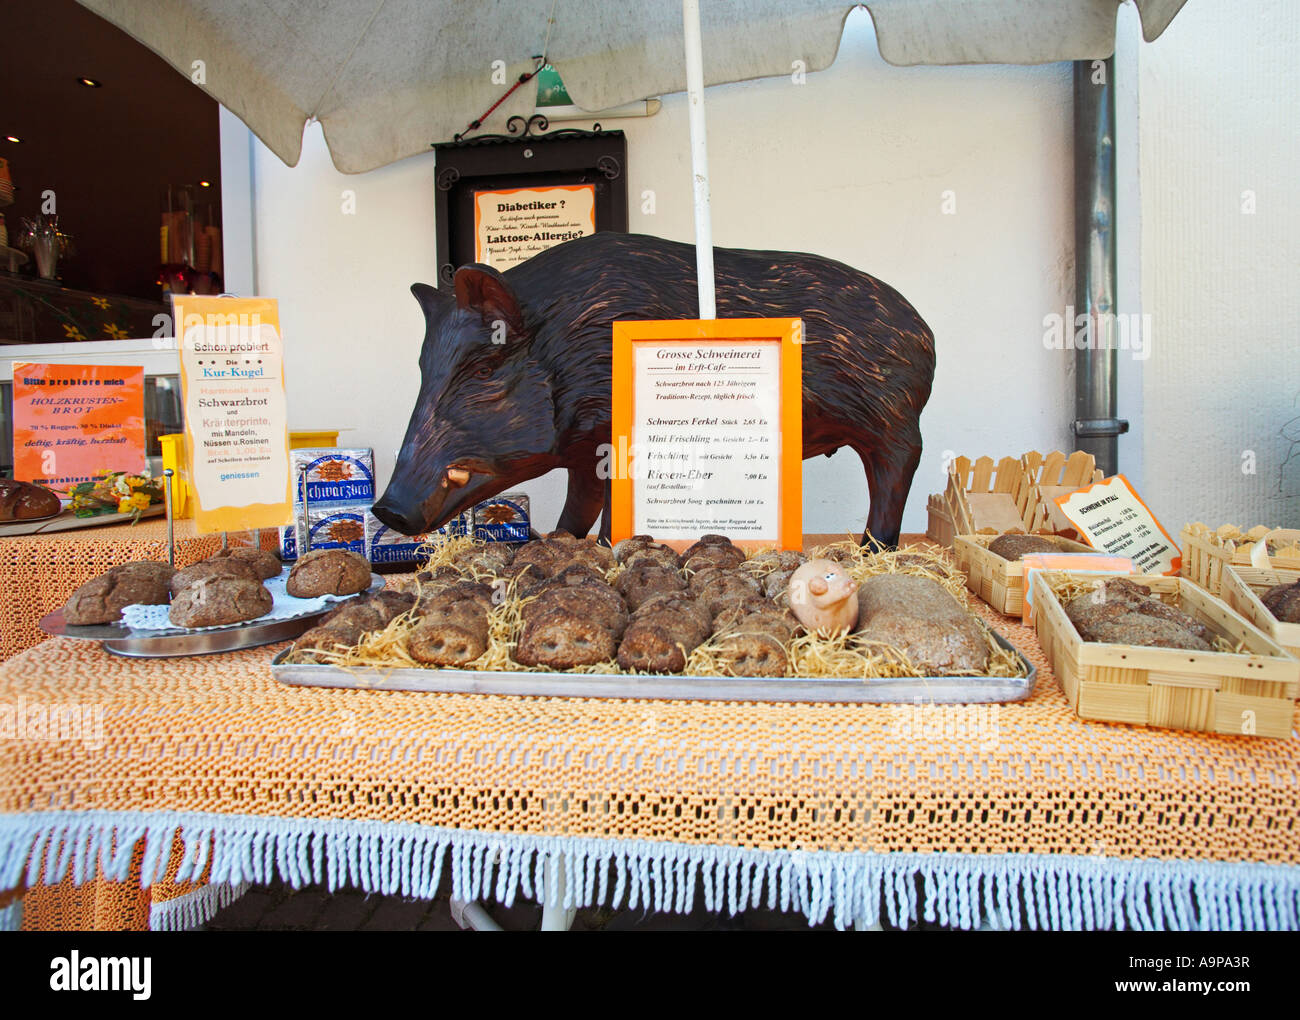 German rye breads on table outside store in Bad Munstereifel, Rhineland, Germany Europe - Stock Image